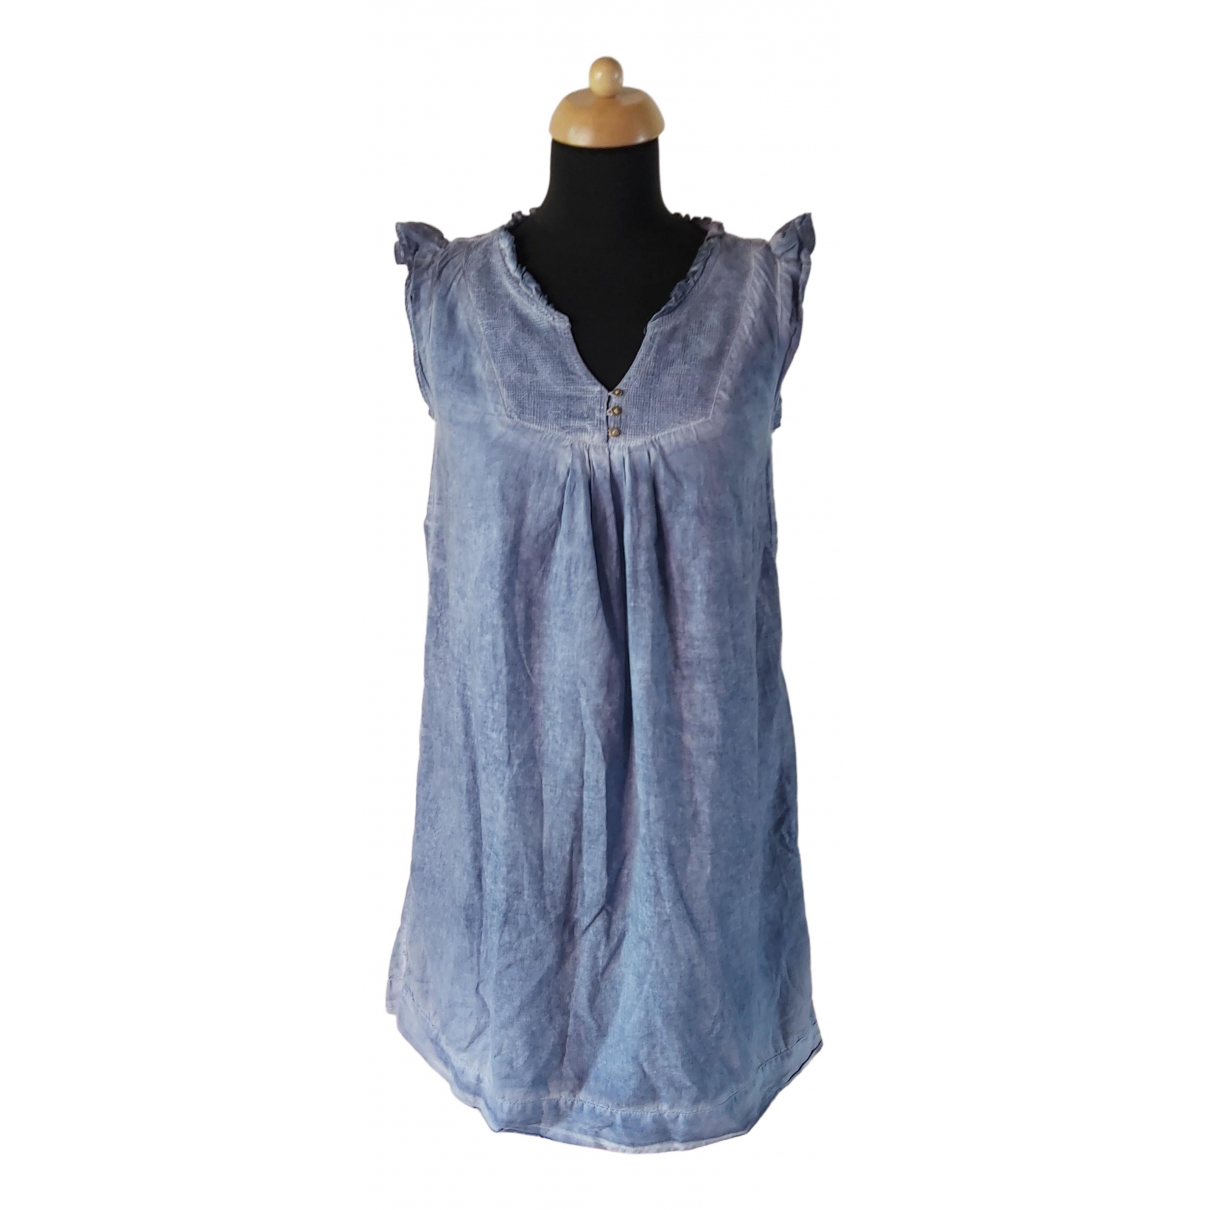 Maison Scotch \N Blue Cotton dress for Women M International